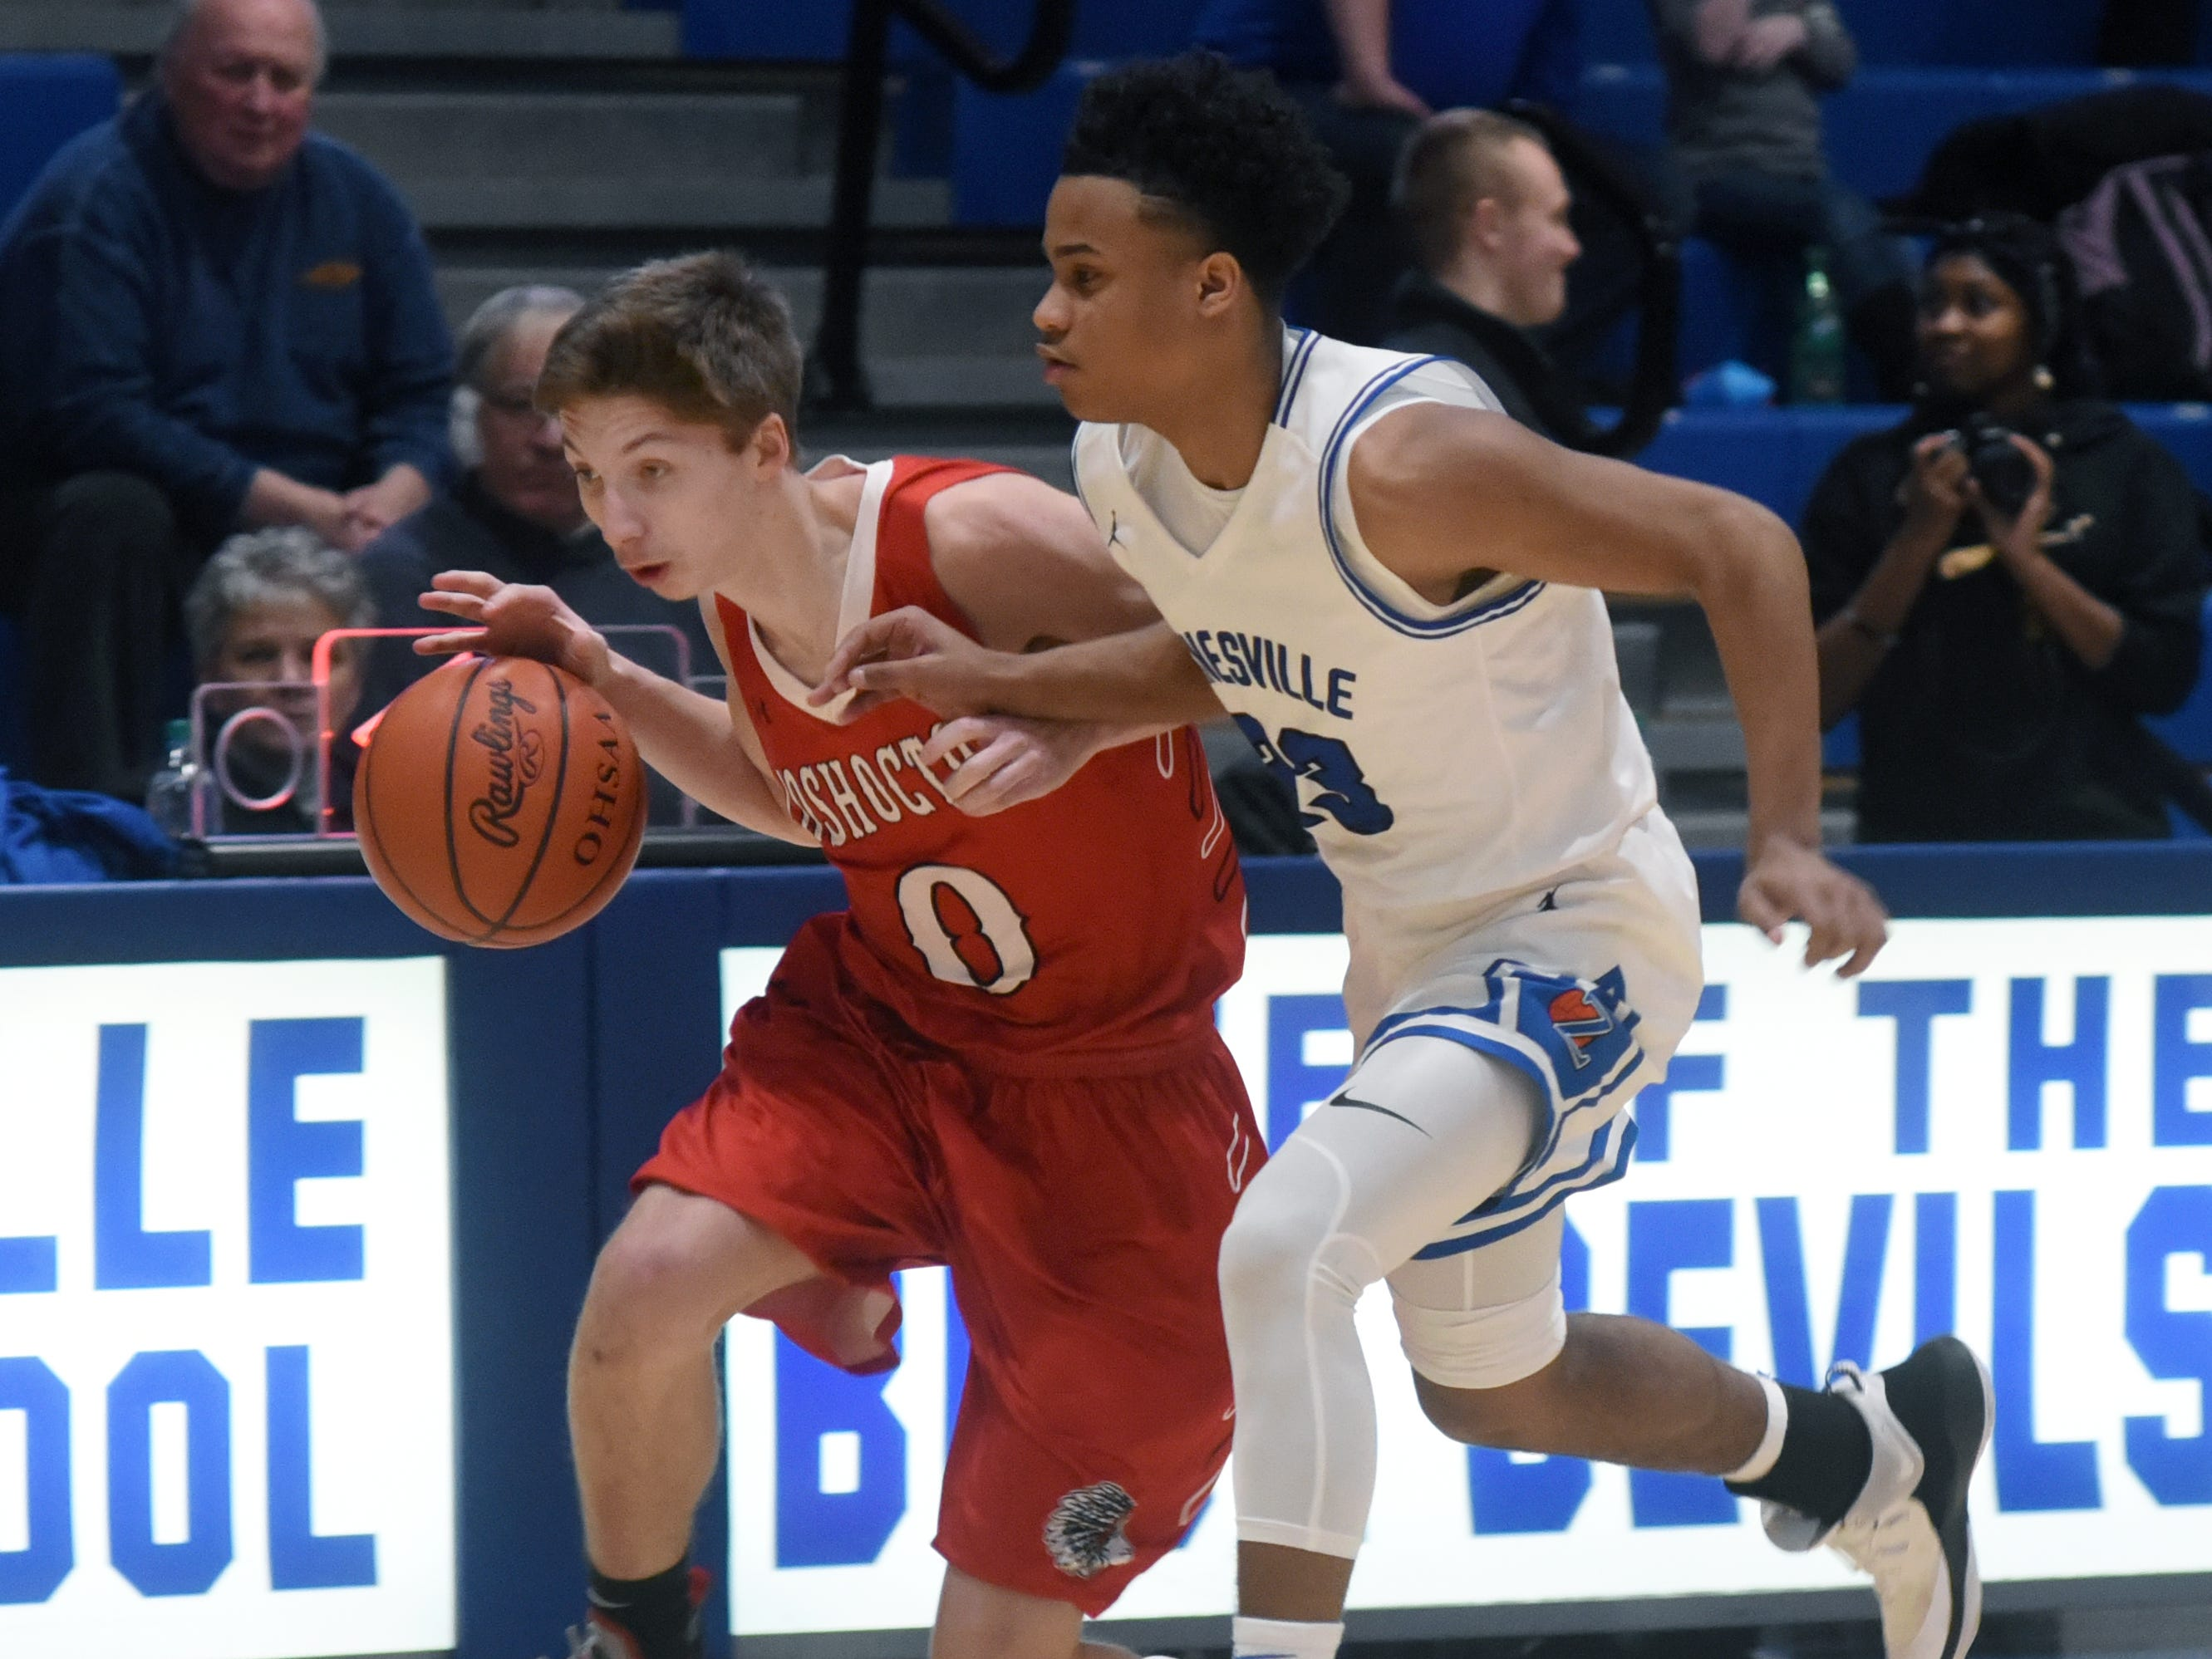 Gaven Williams, of Coshocton, drives up court against Zanesville's Greg Gibson.